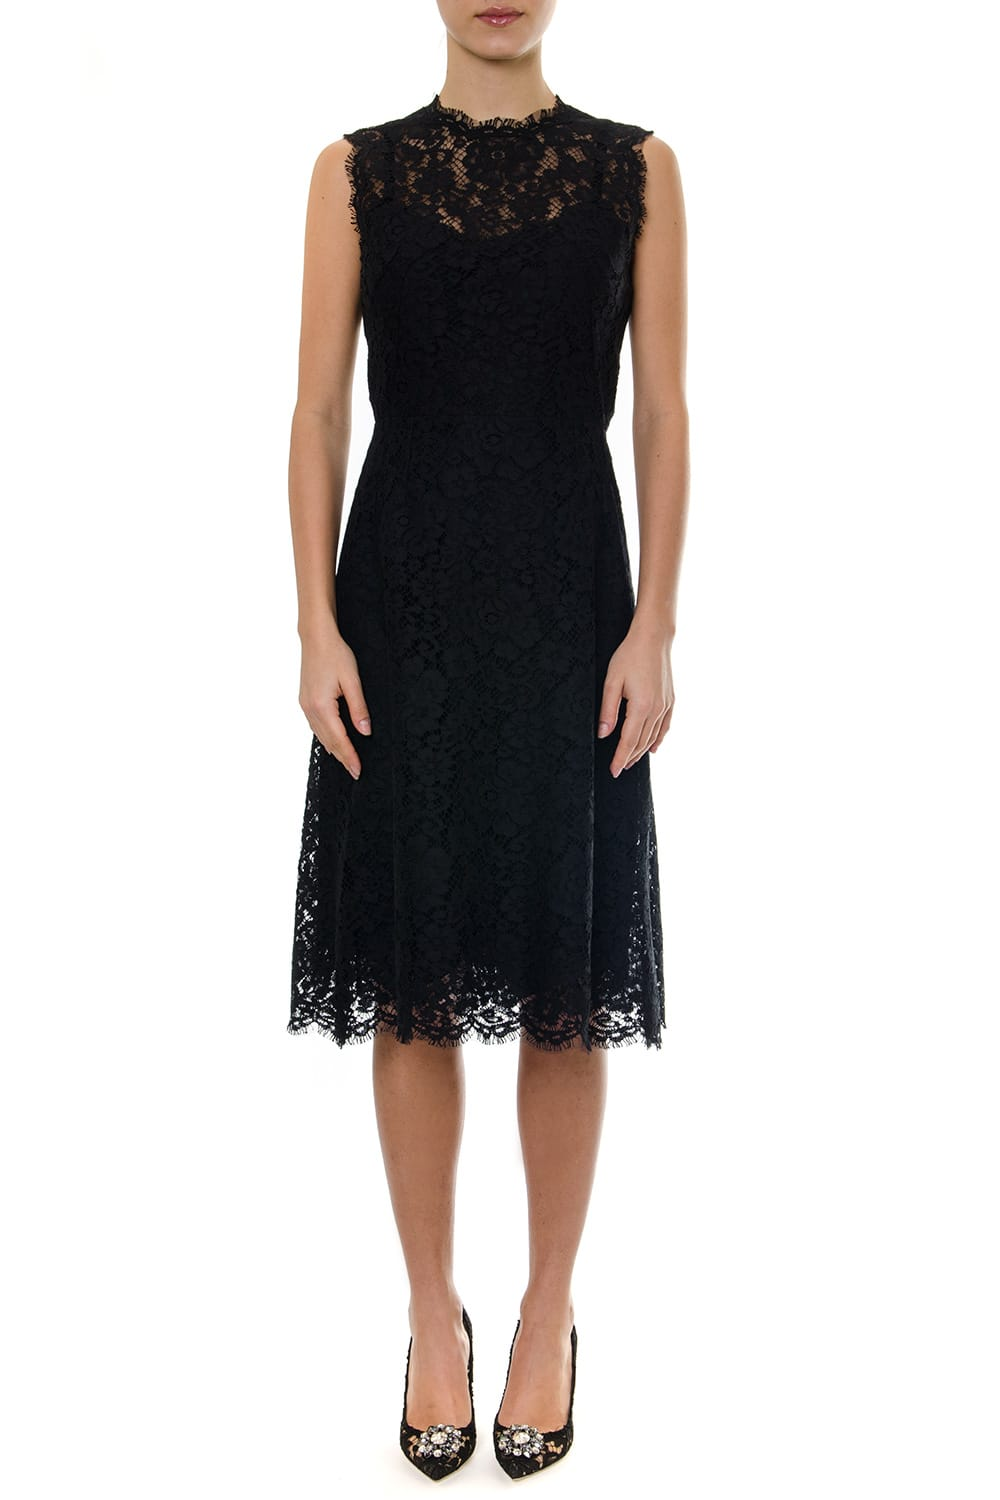 Dolce & Gabbana Midi Black Sleevelees Laced Dress